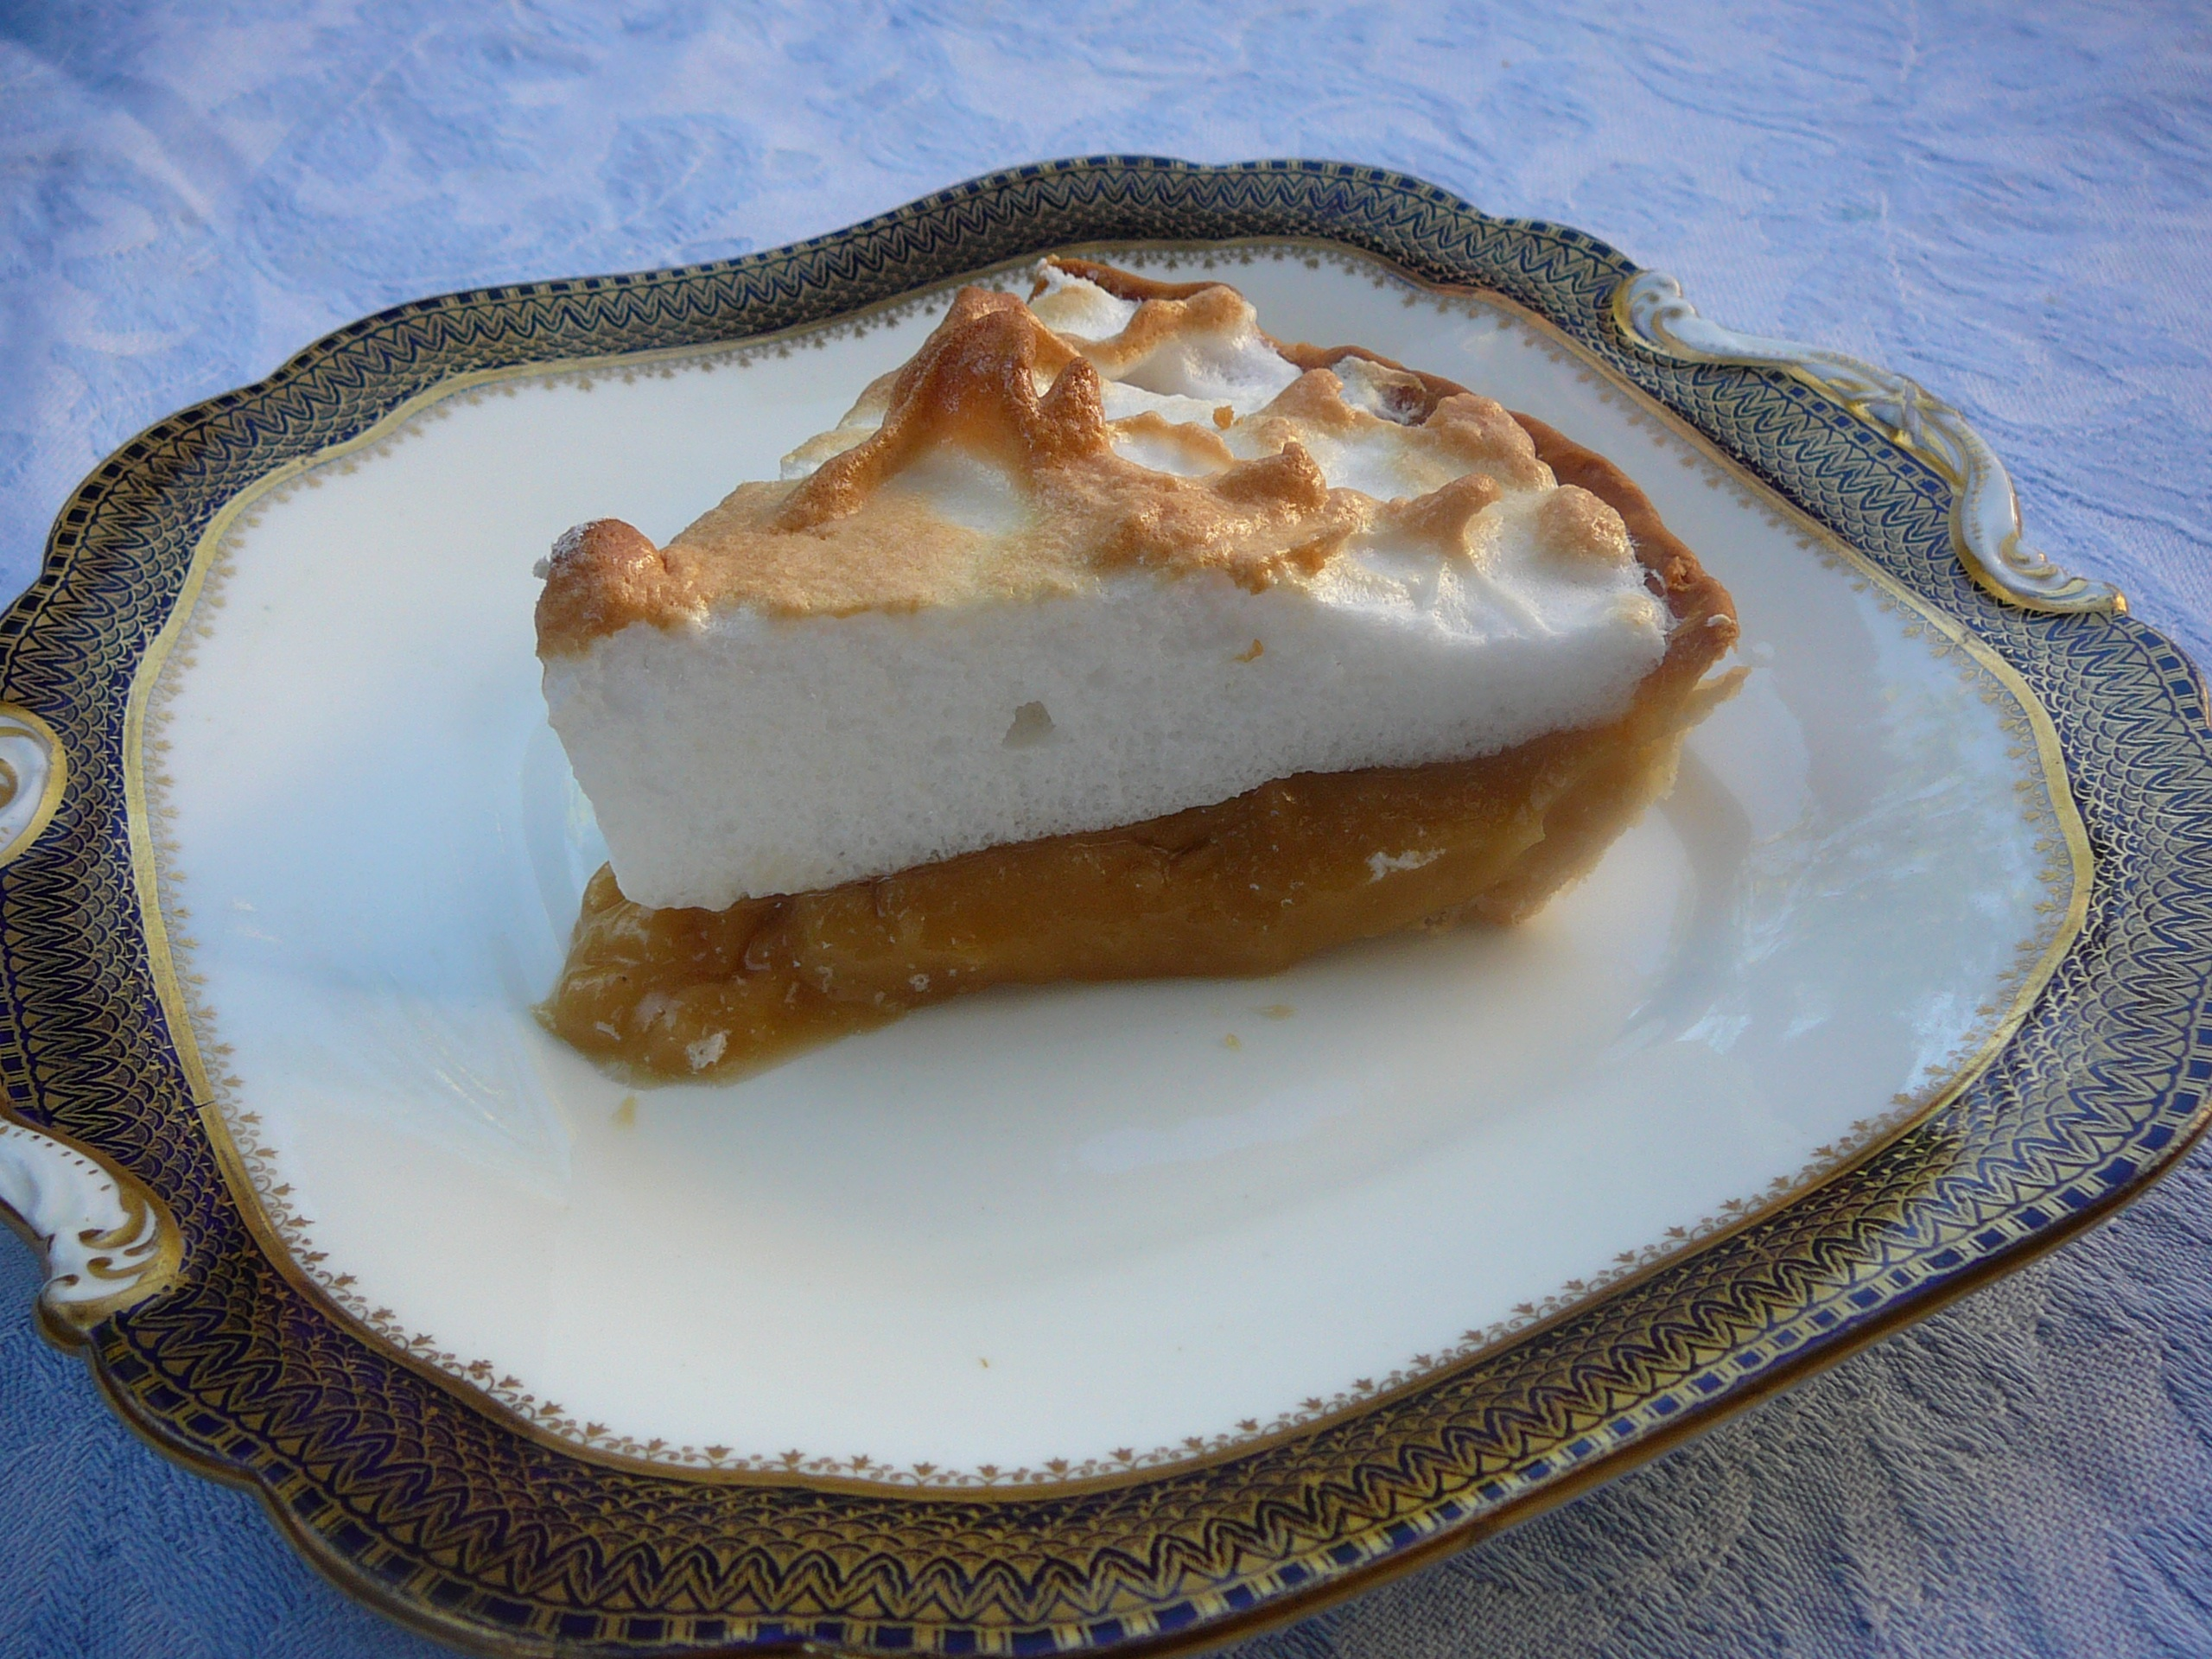 Butterscotch Pie, made with Thai palm sugar in place of brown sugar